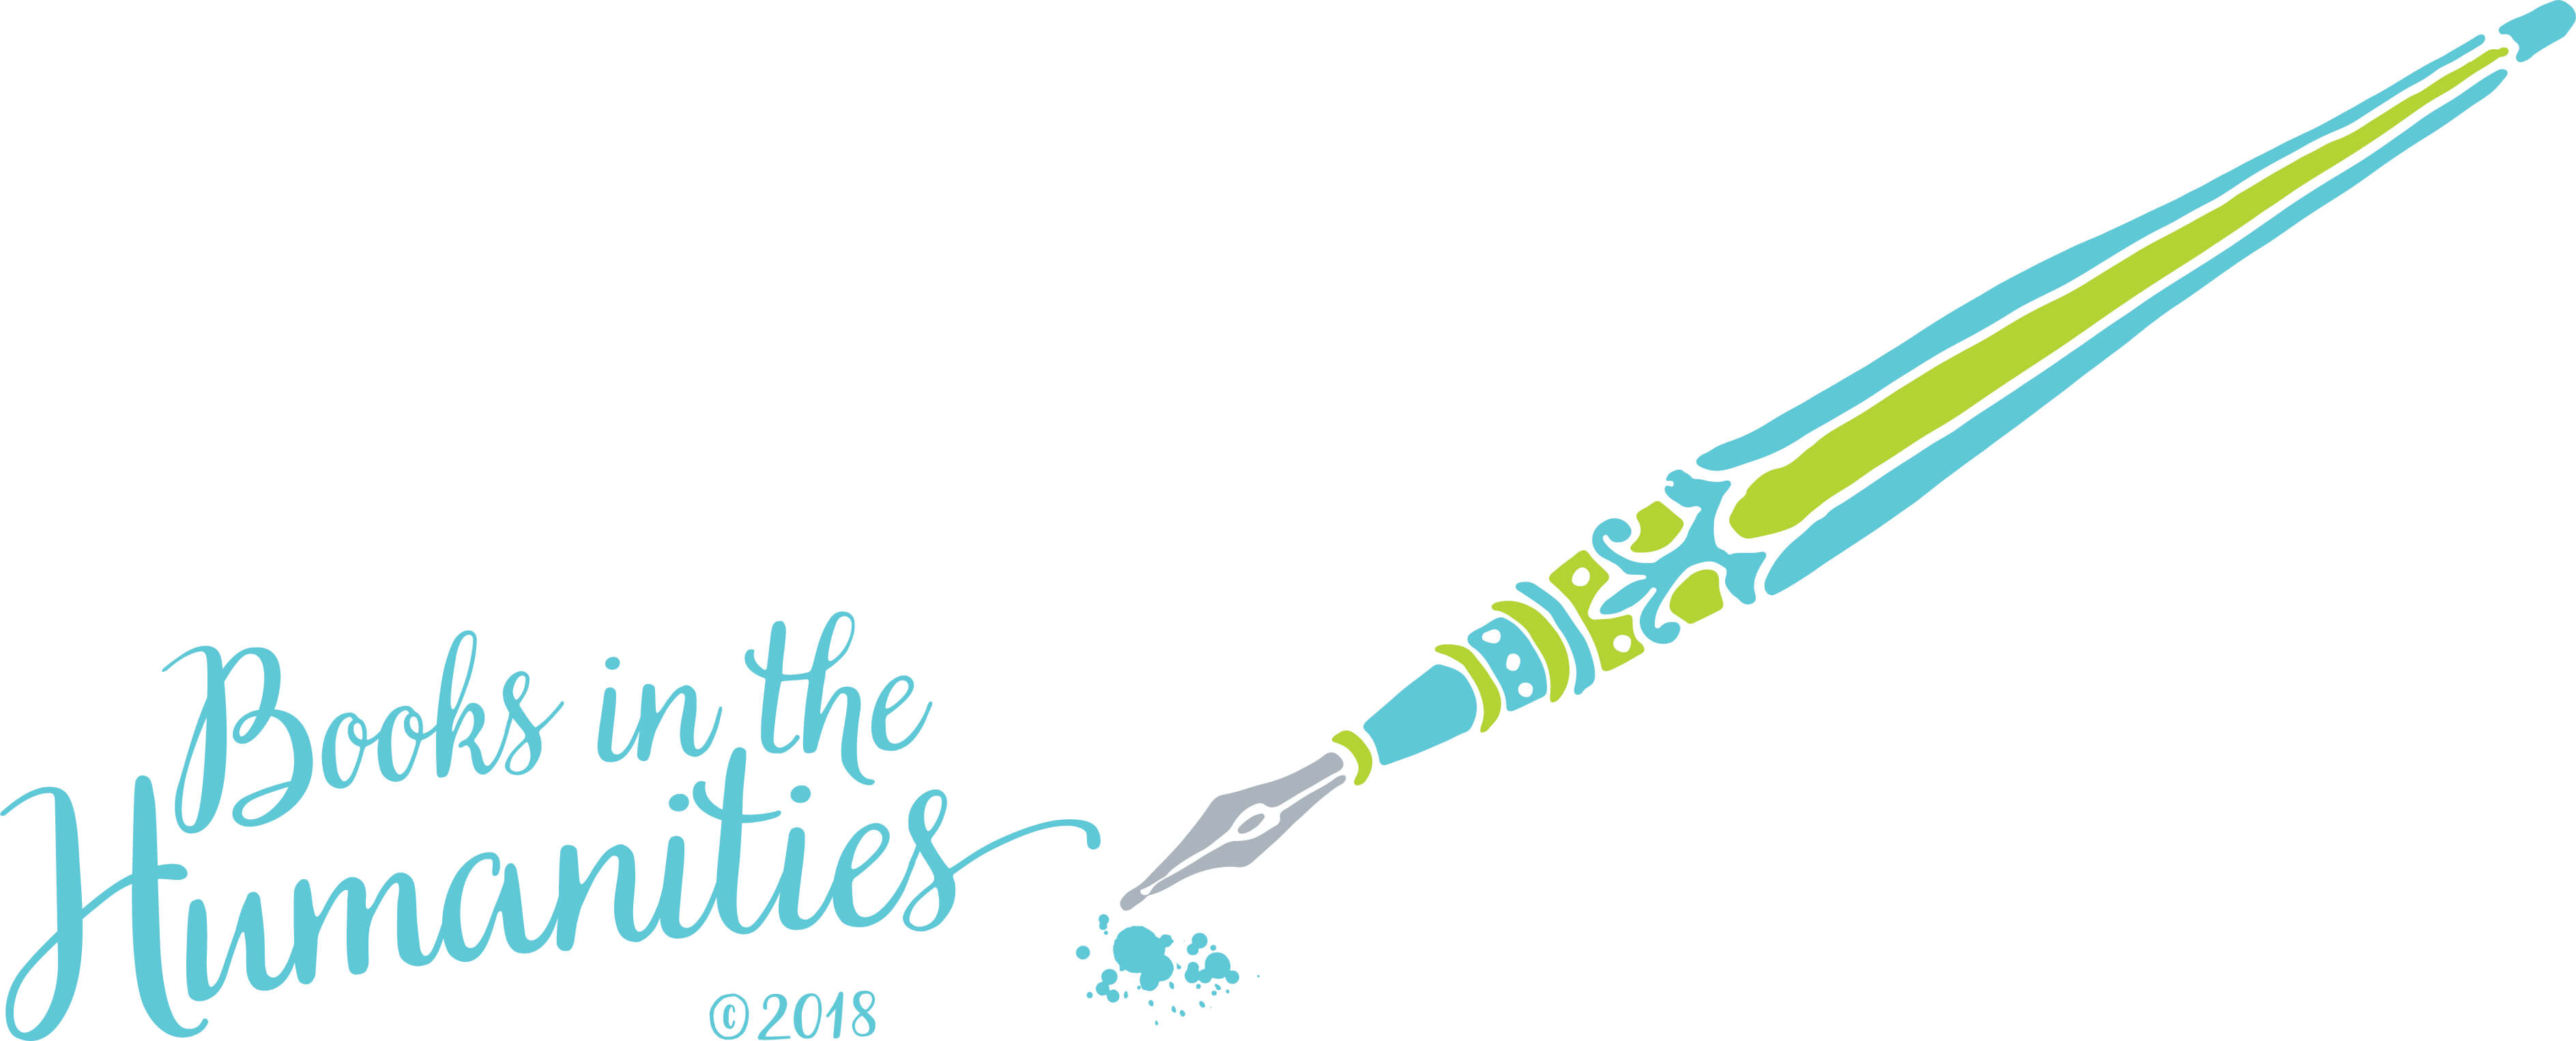 Event logo for Books in the Humanities 2018